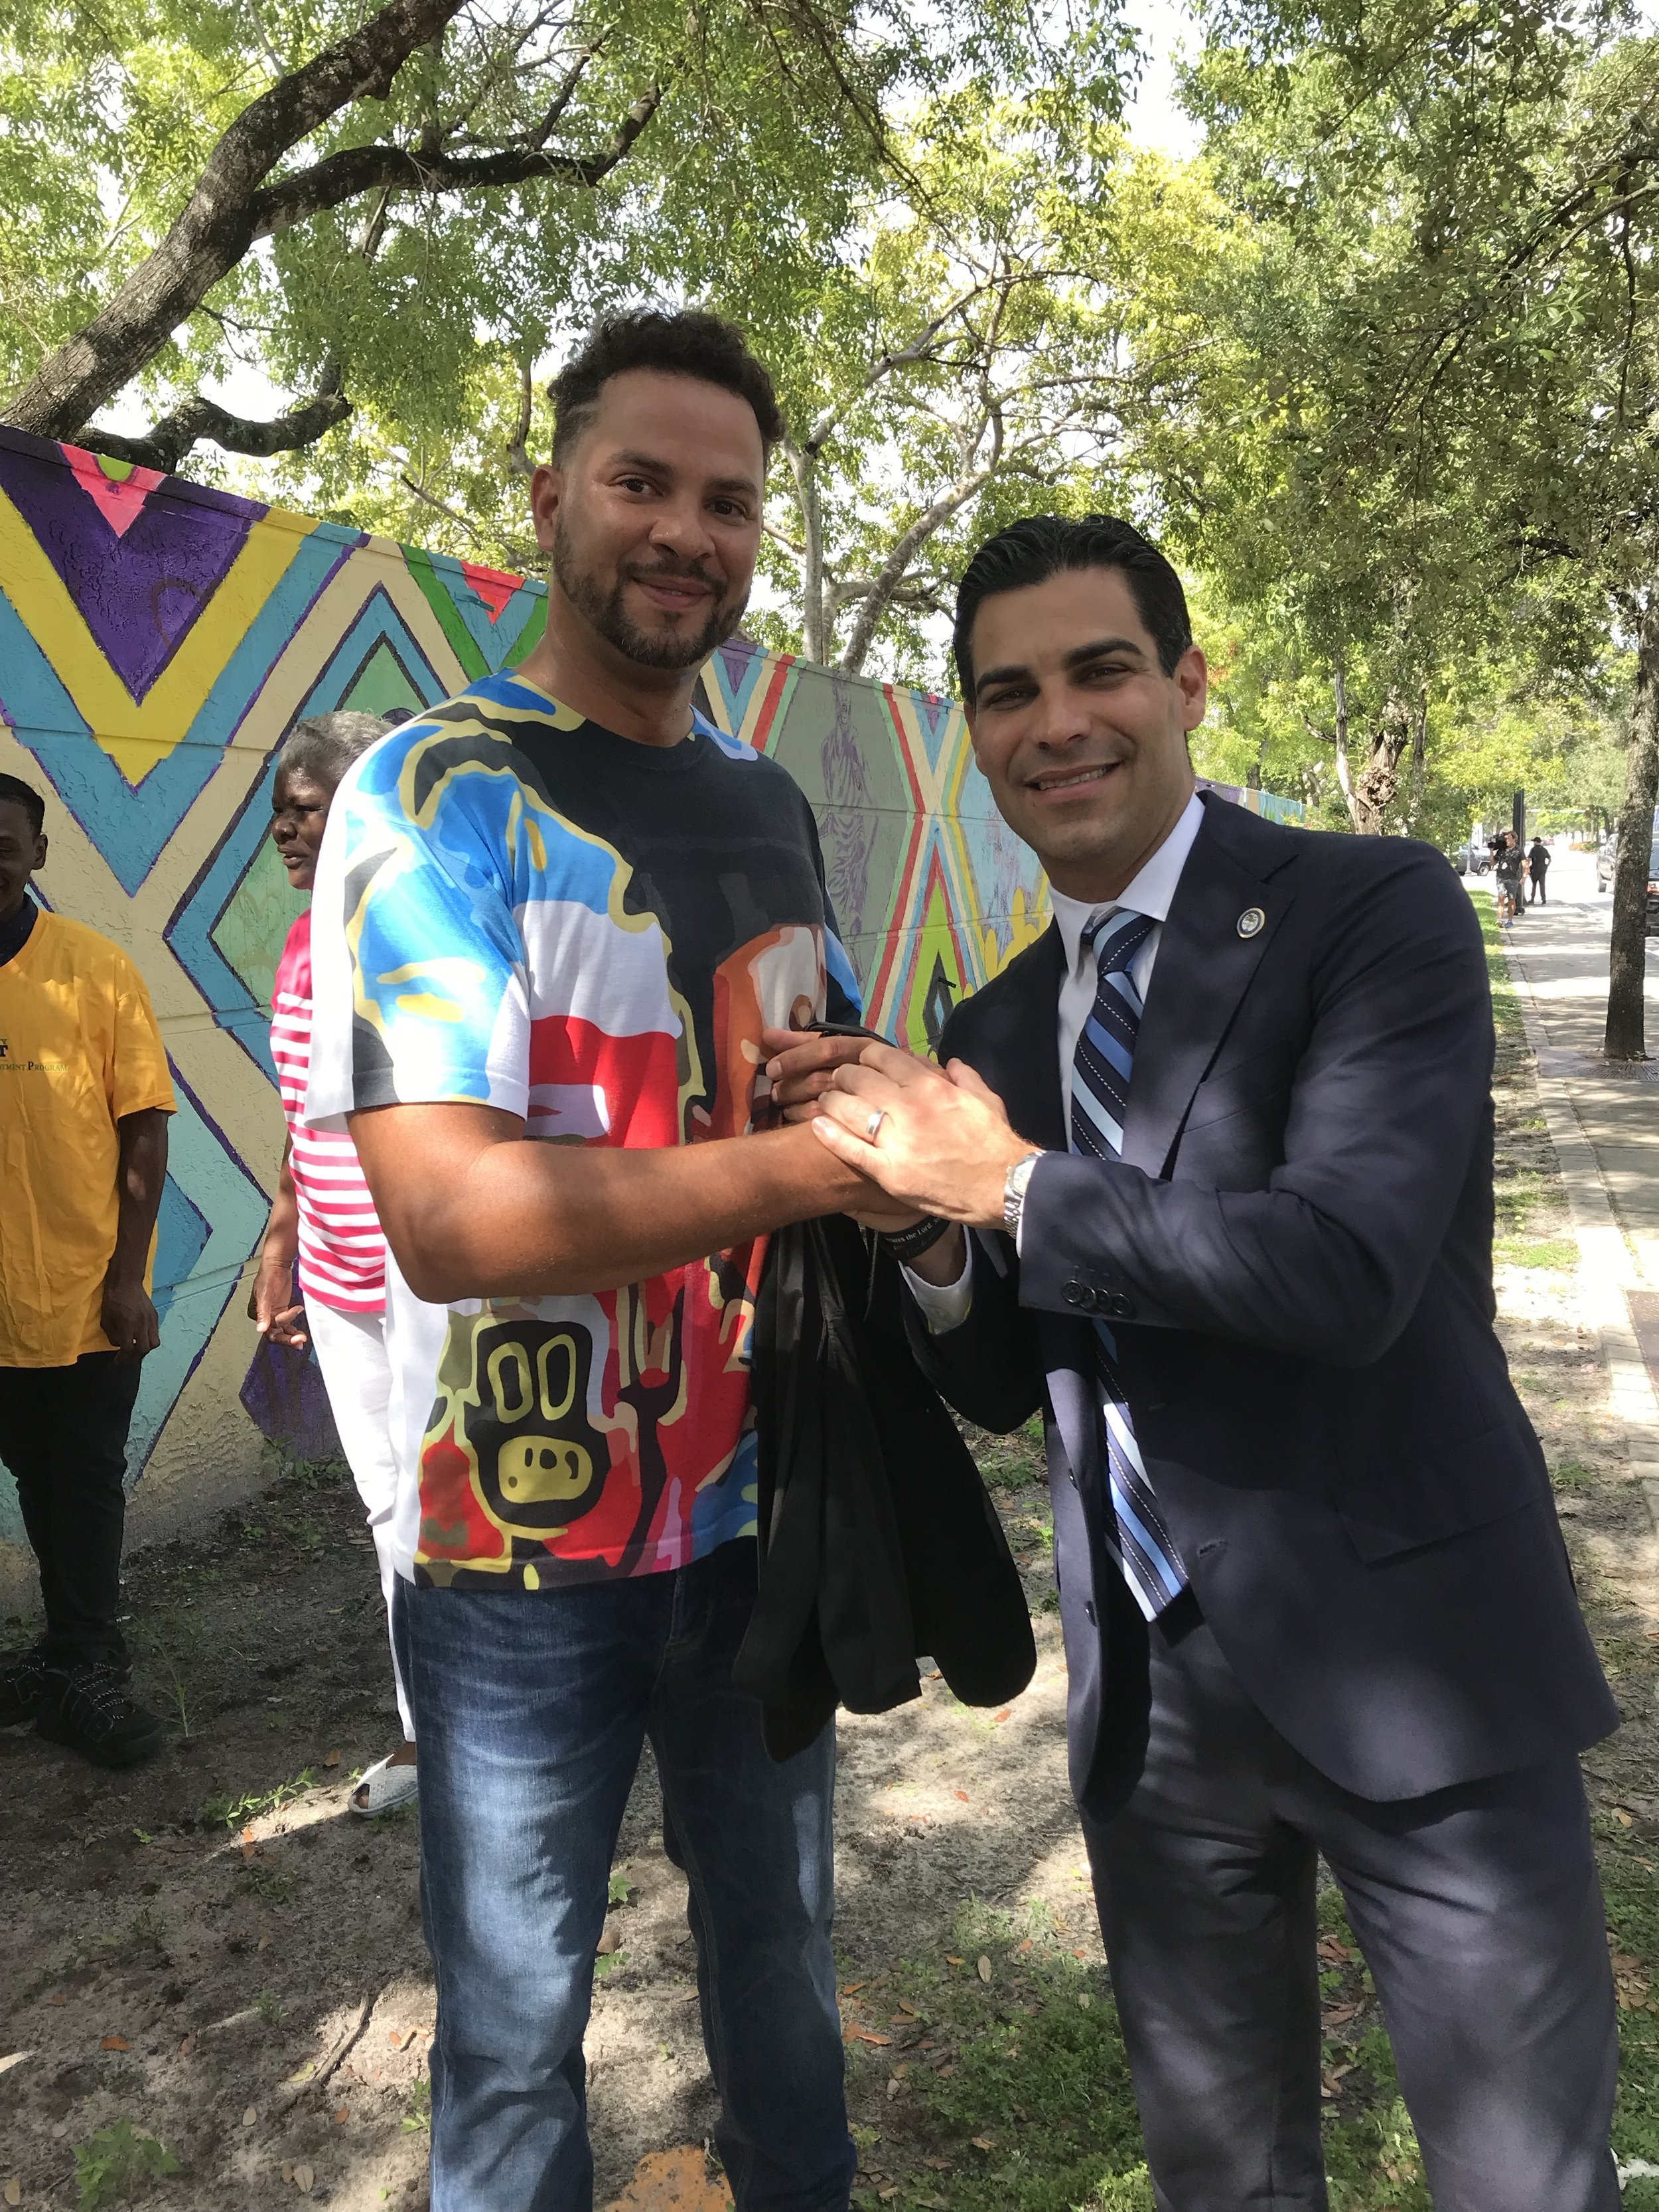 """Mayor Suarez and Kyle Holbrook - """"Some walls tear us apart this wall brings people together"""""""